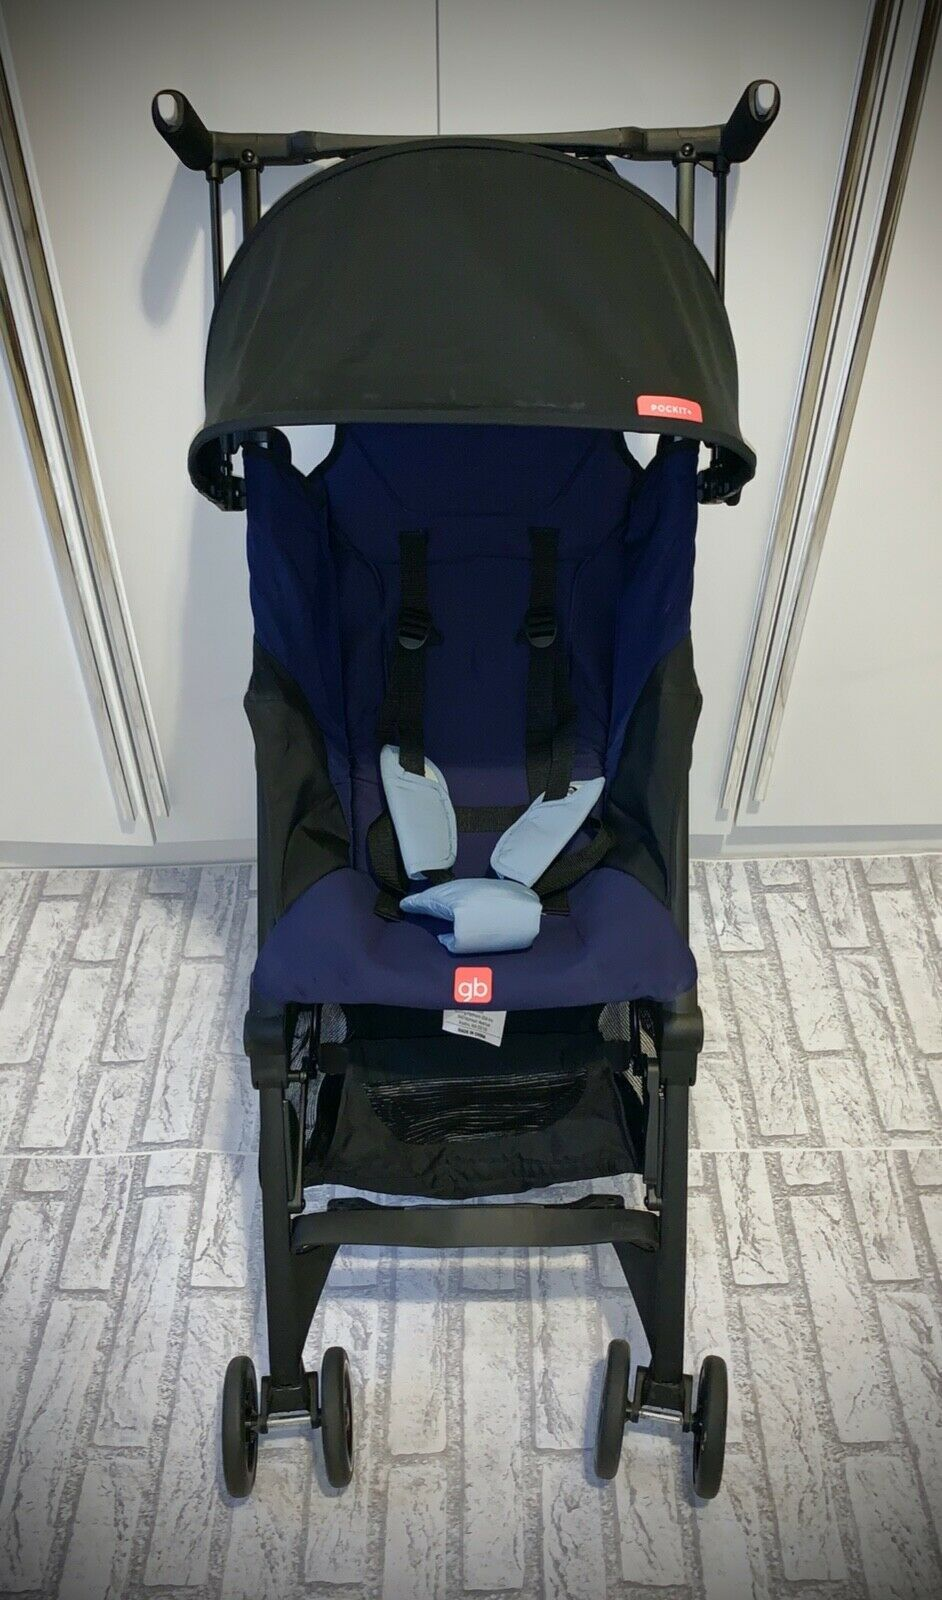 GB Pockit Plus Ultra Compact Lightweight Stroller